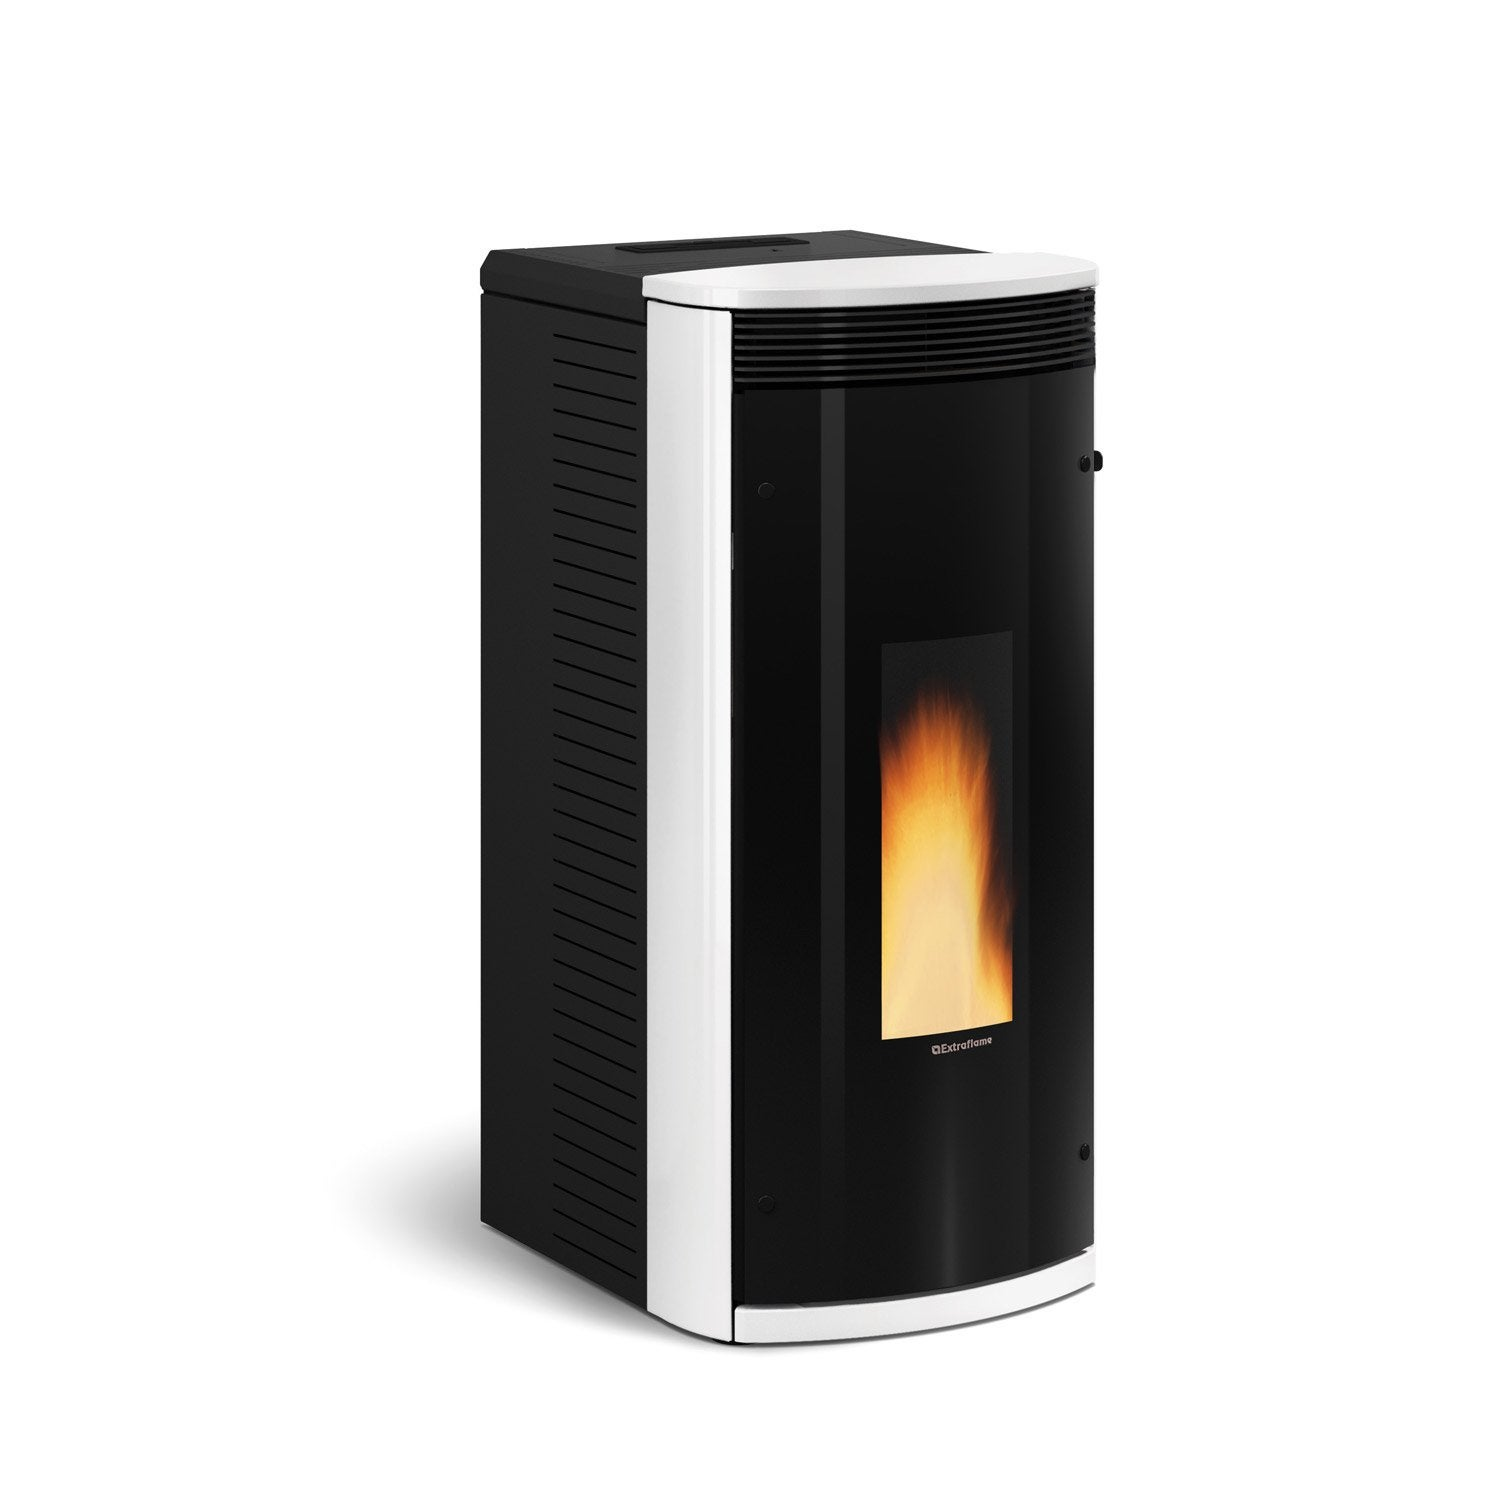 po le granul s extraflame sibilla plus blanc 8 2 kw leroy merlin. Black Bedroom Furniture Sets. Home Design Ideas